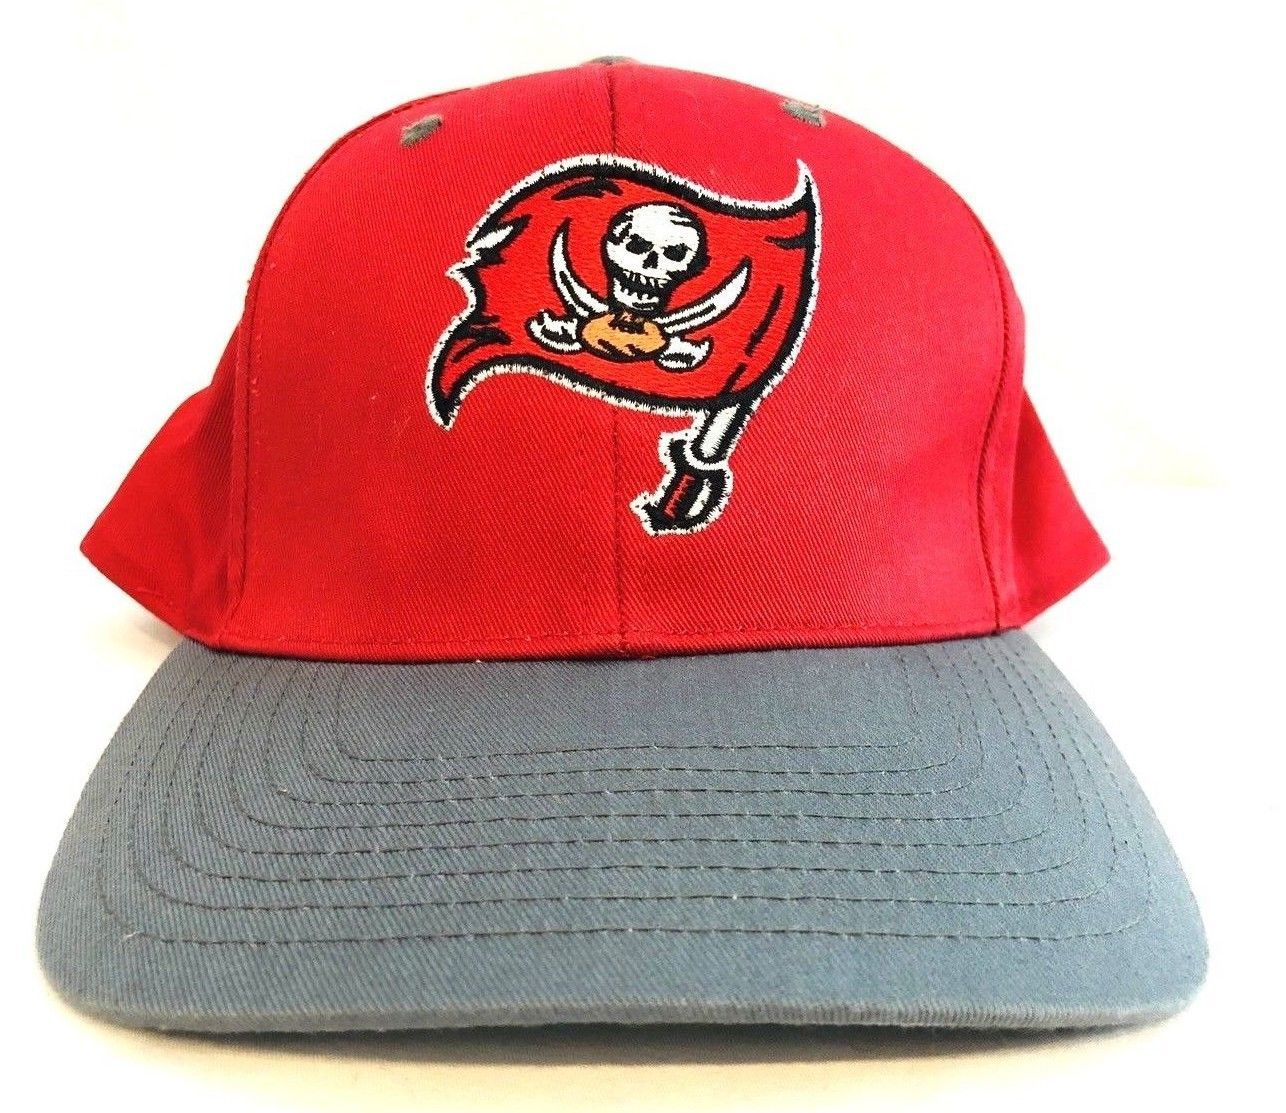 low priced edeab 88f28 Tampa Bay Buccaneers Hat Logo 7 Cap Snapback NFL Football Baseball Red  Light Up